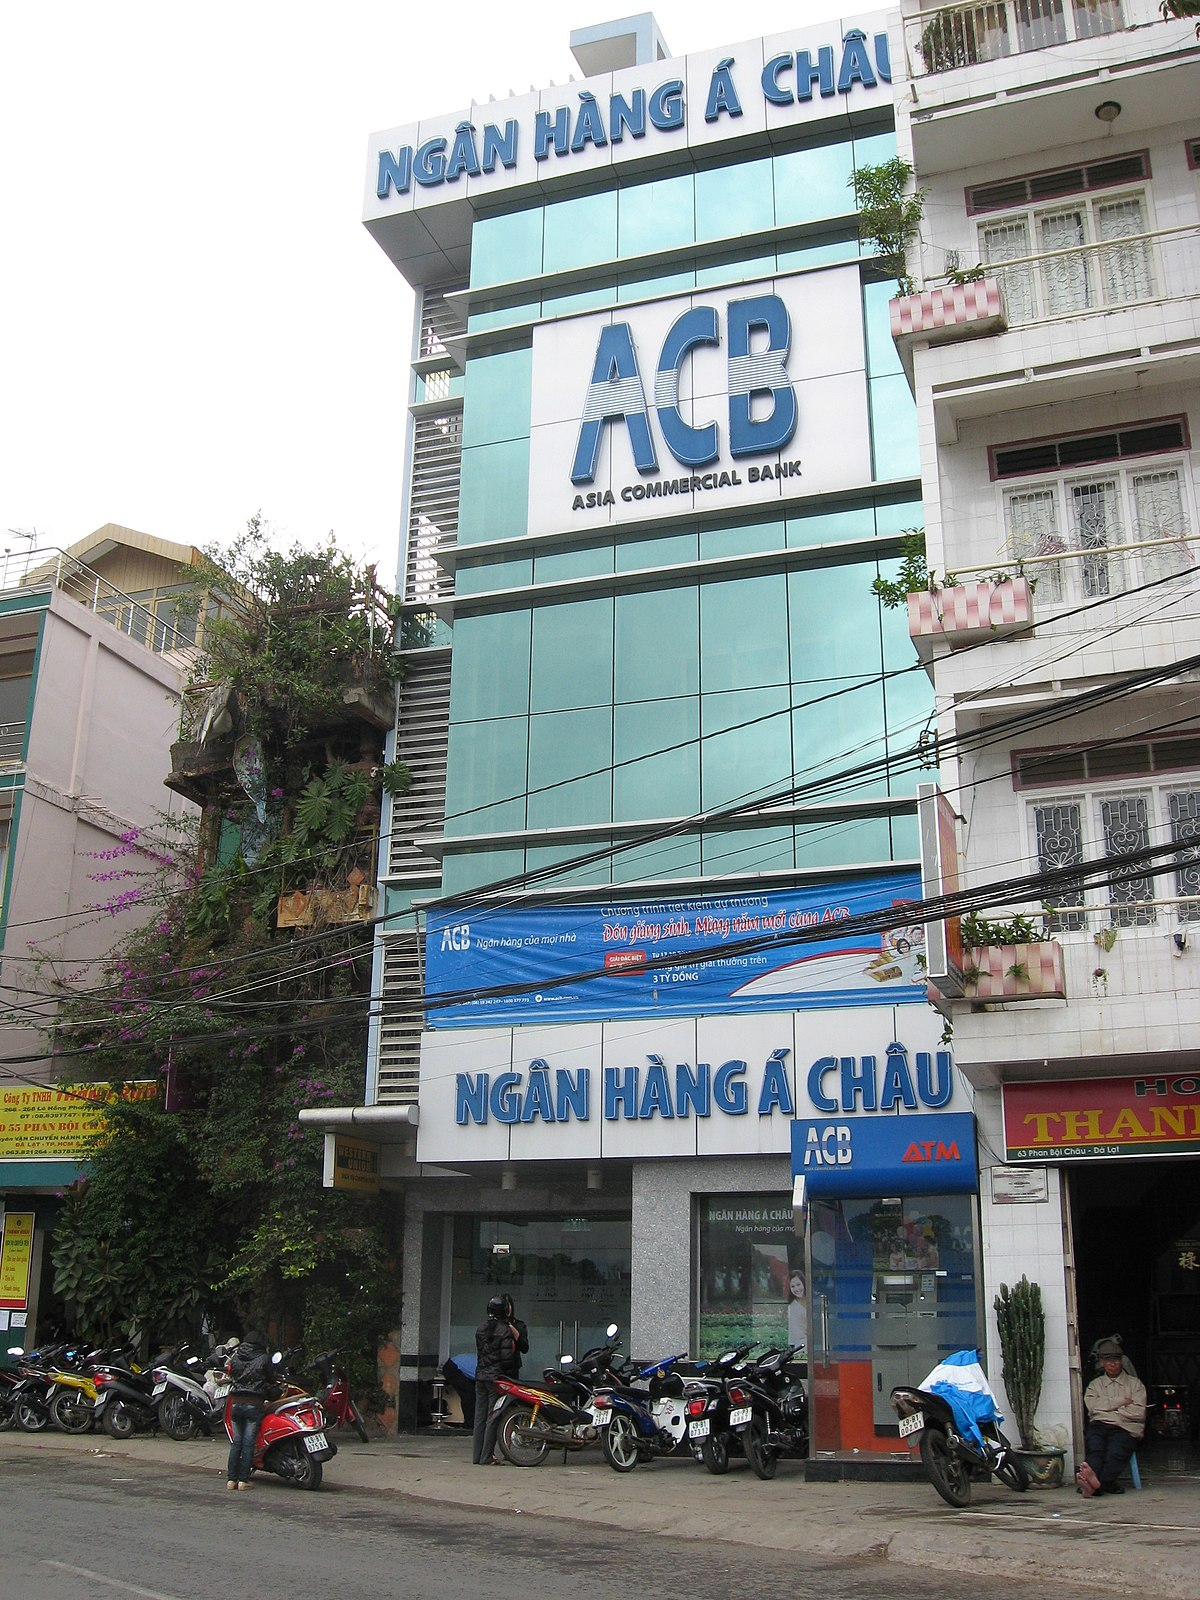 Asian commercial bank seems